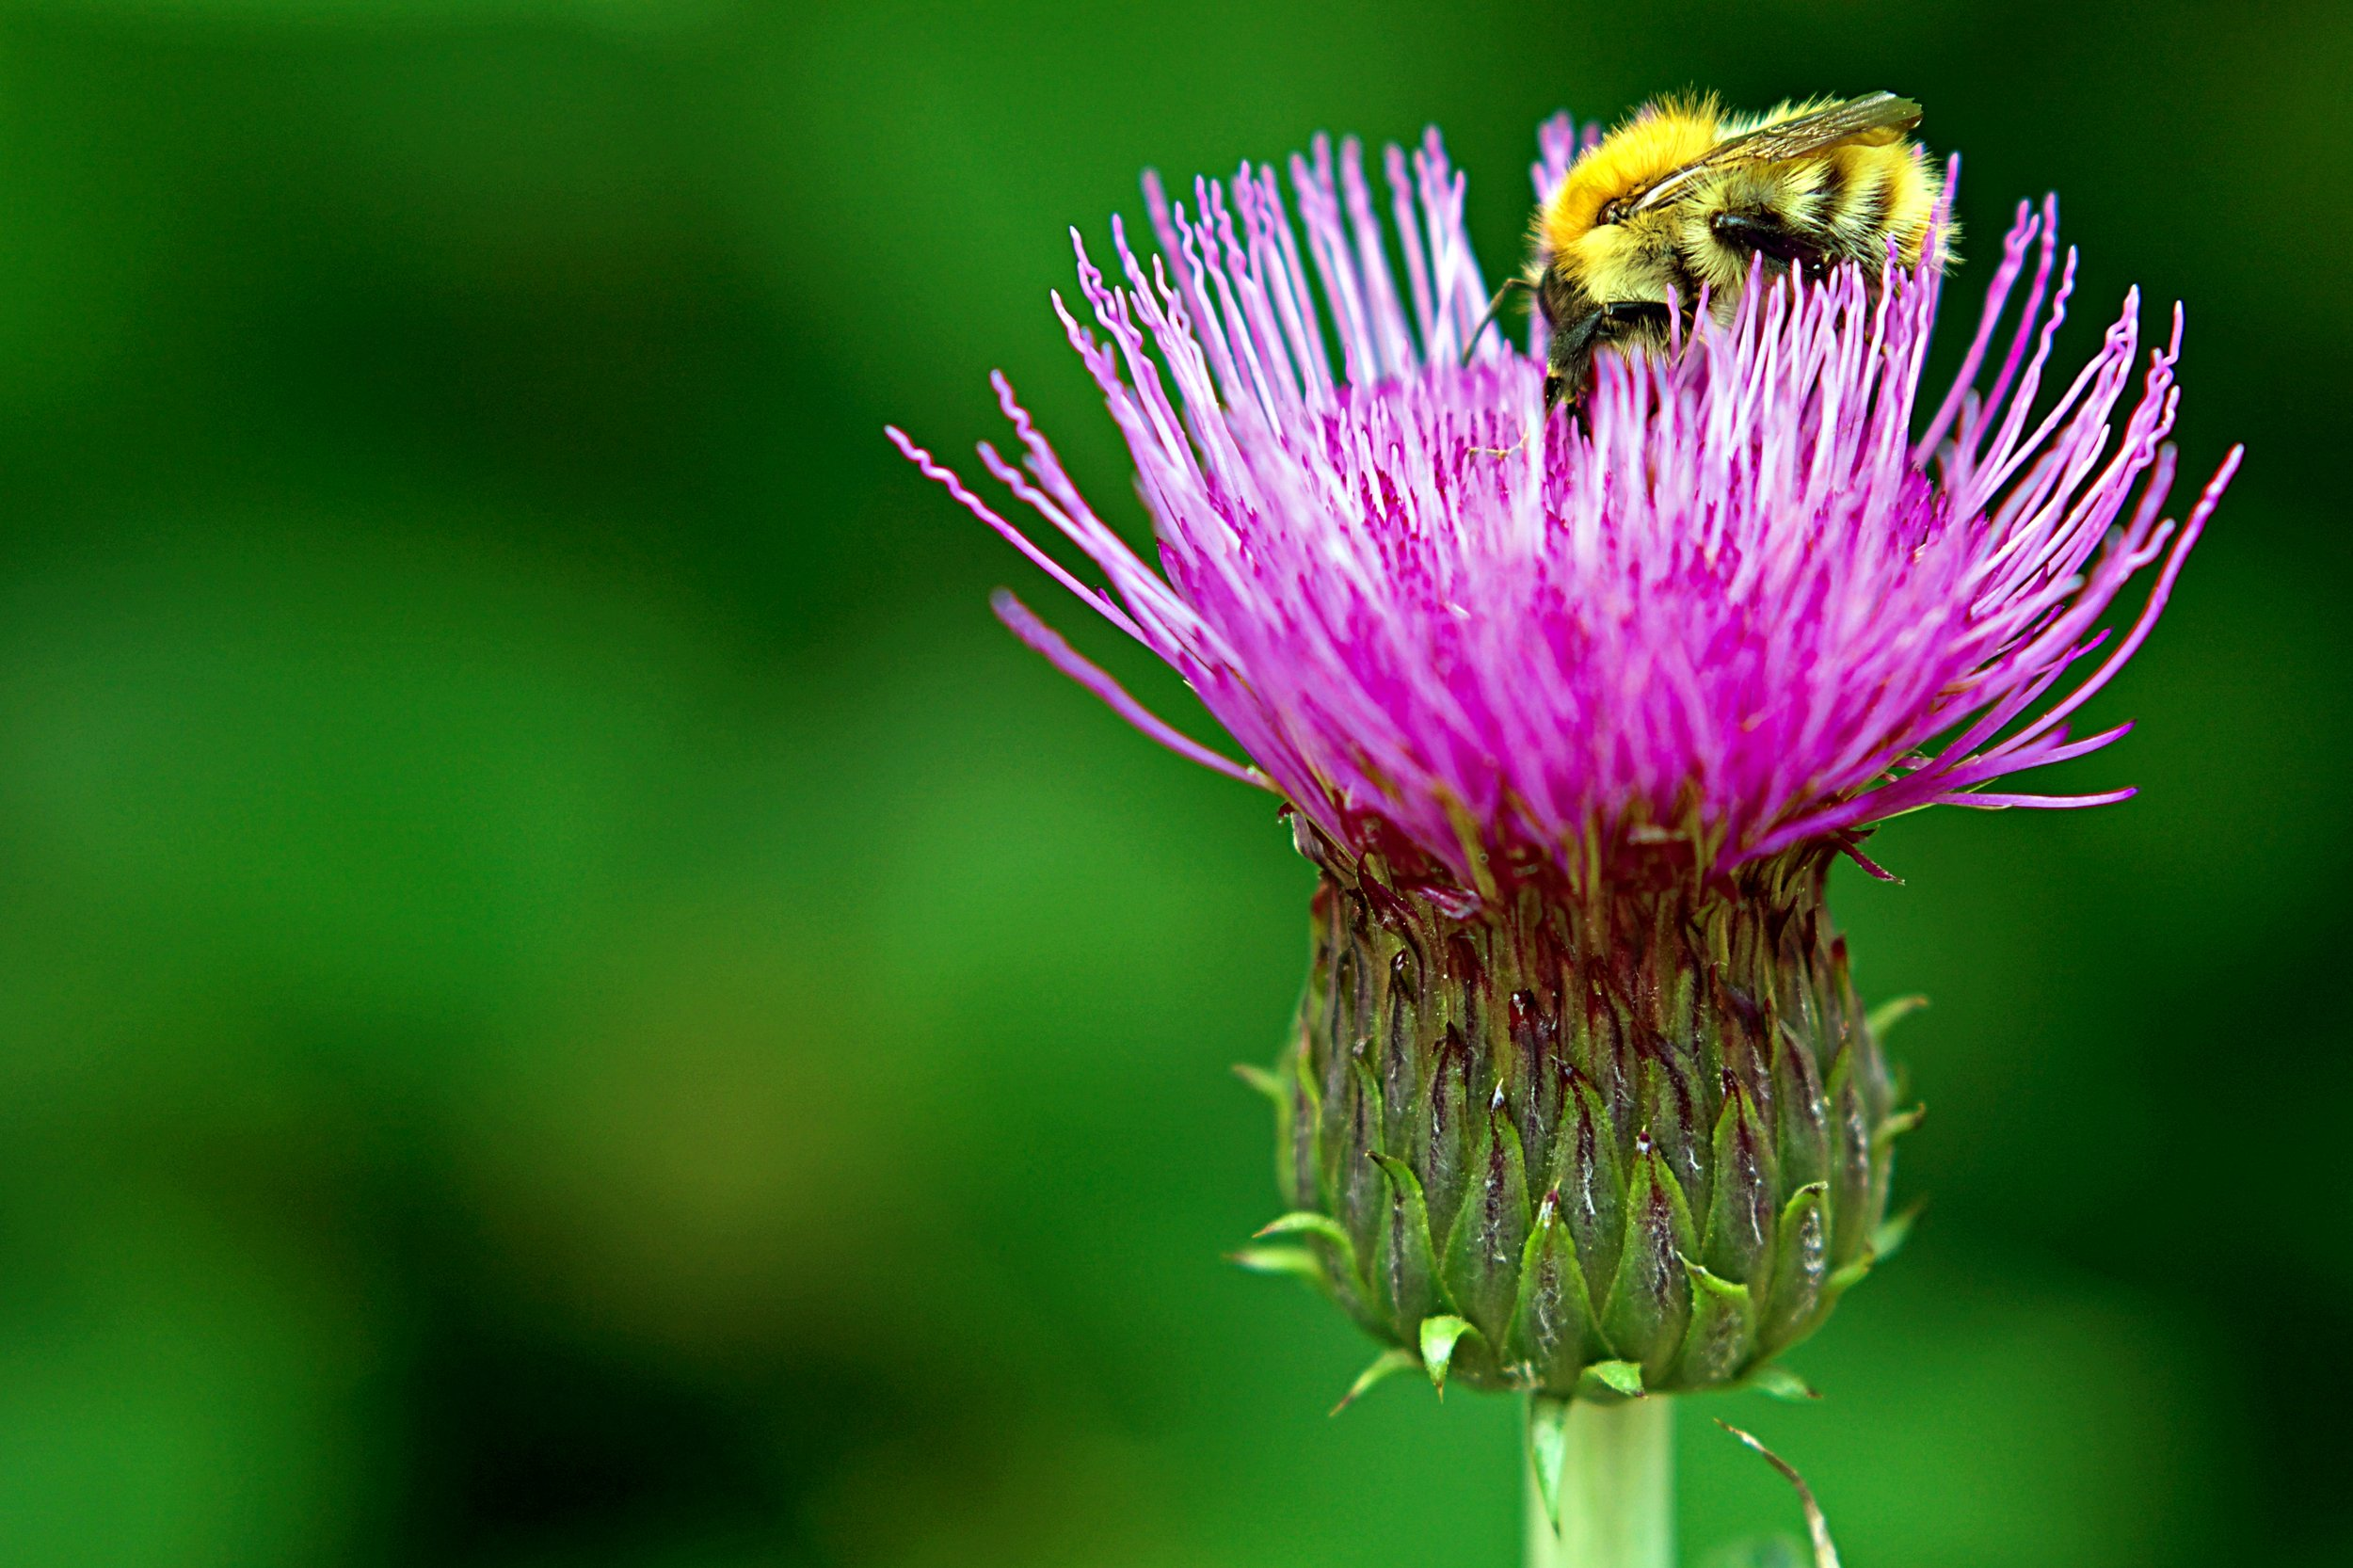 This thistle grows on the banks of the Water of Leith in Edinburgh, Scotland. The thistle is the national flower of Scotland.